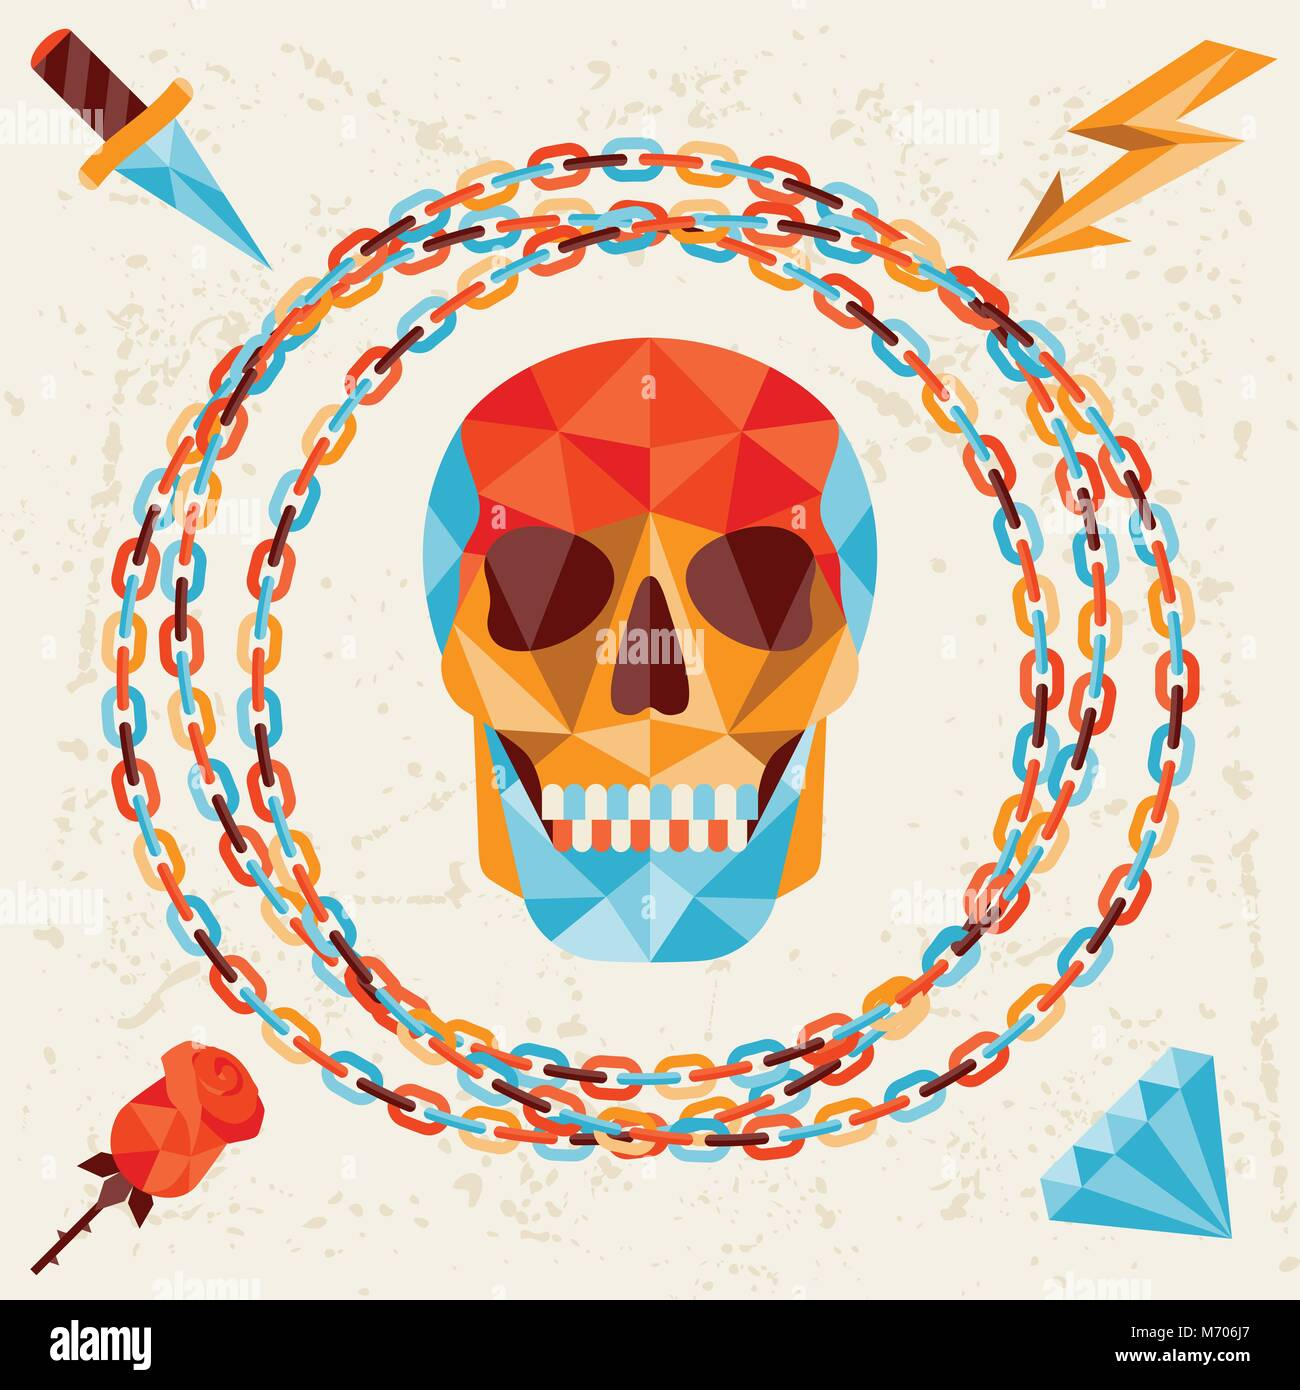 Card with colored geometric skull - Stock Vector